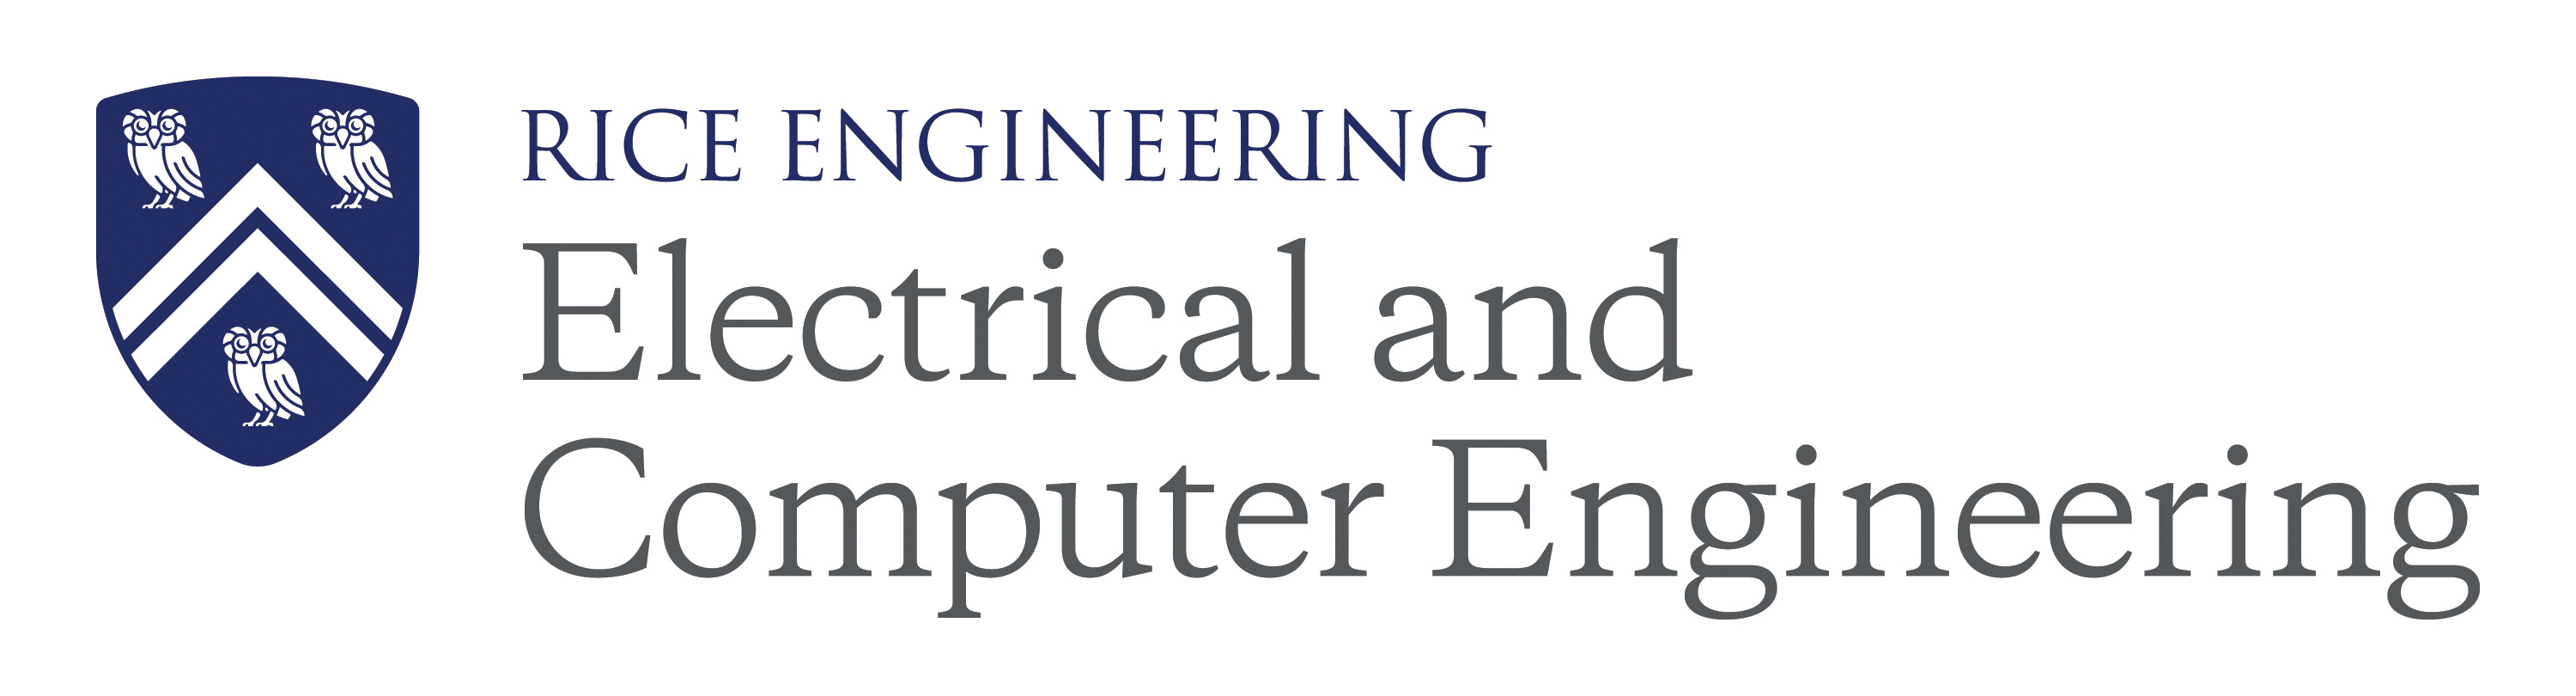 Rice University Electrical and Computer Engineering Department Logo